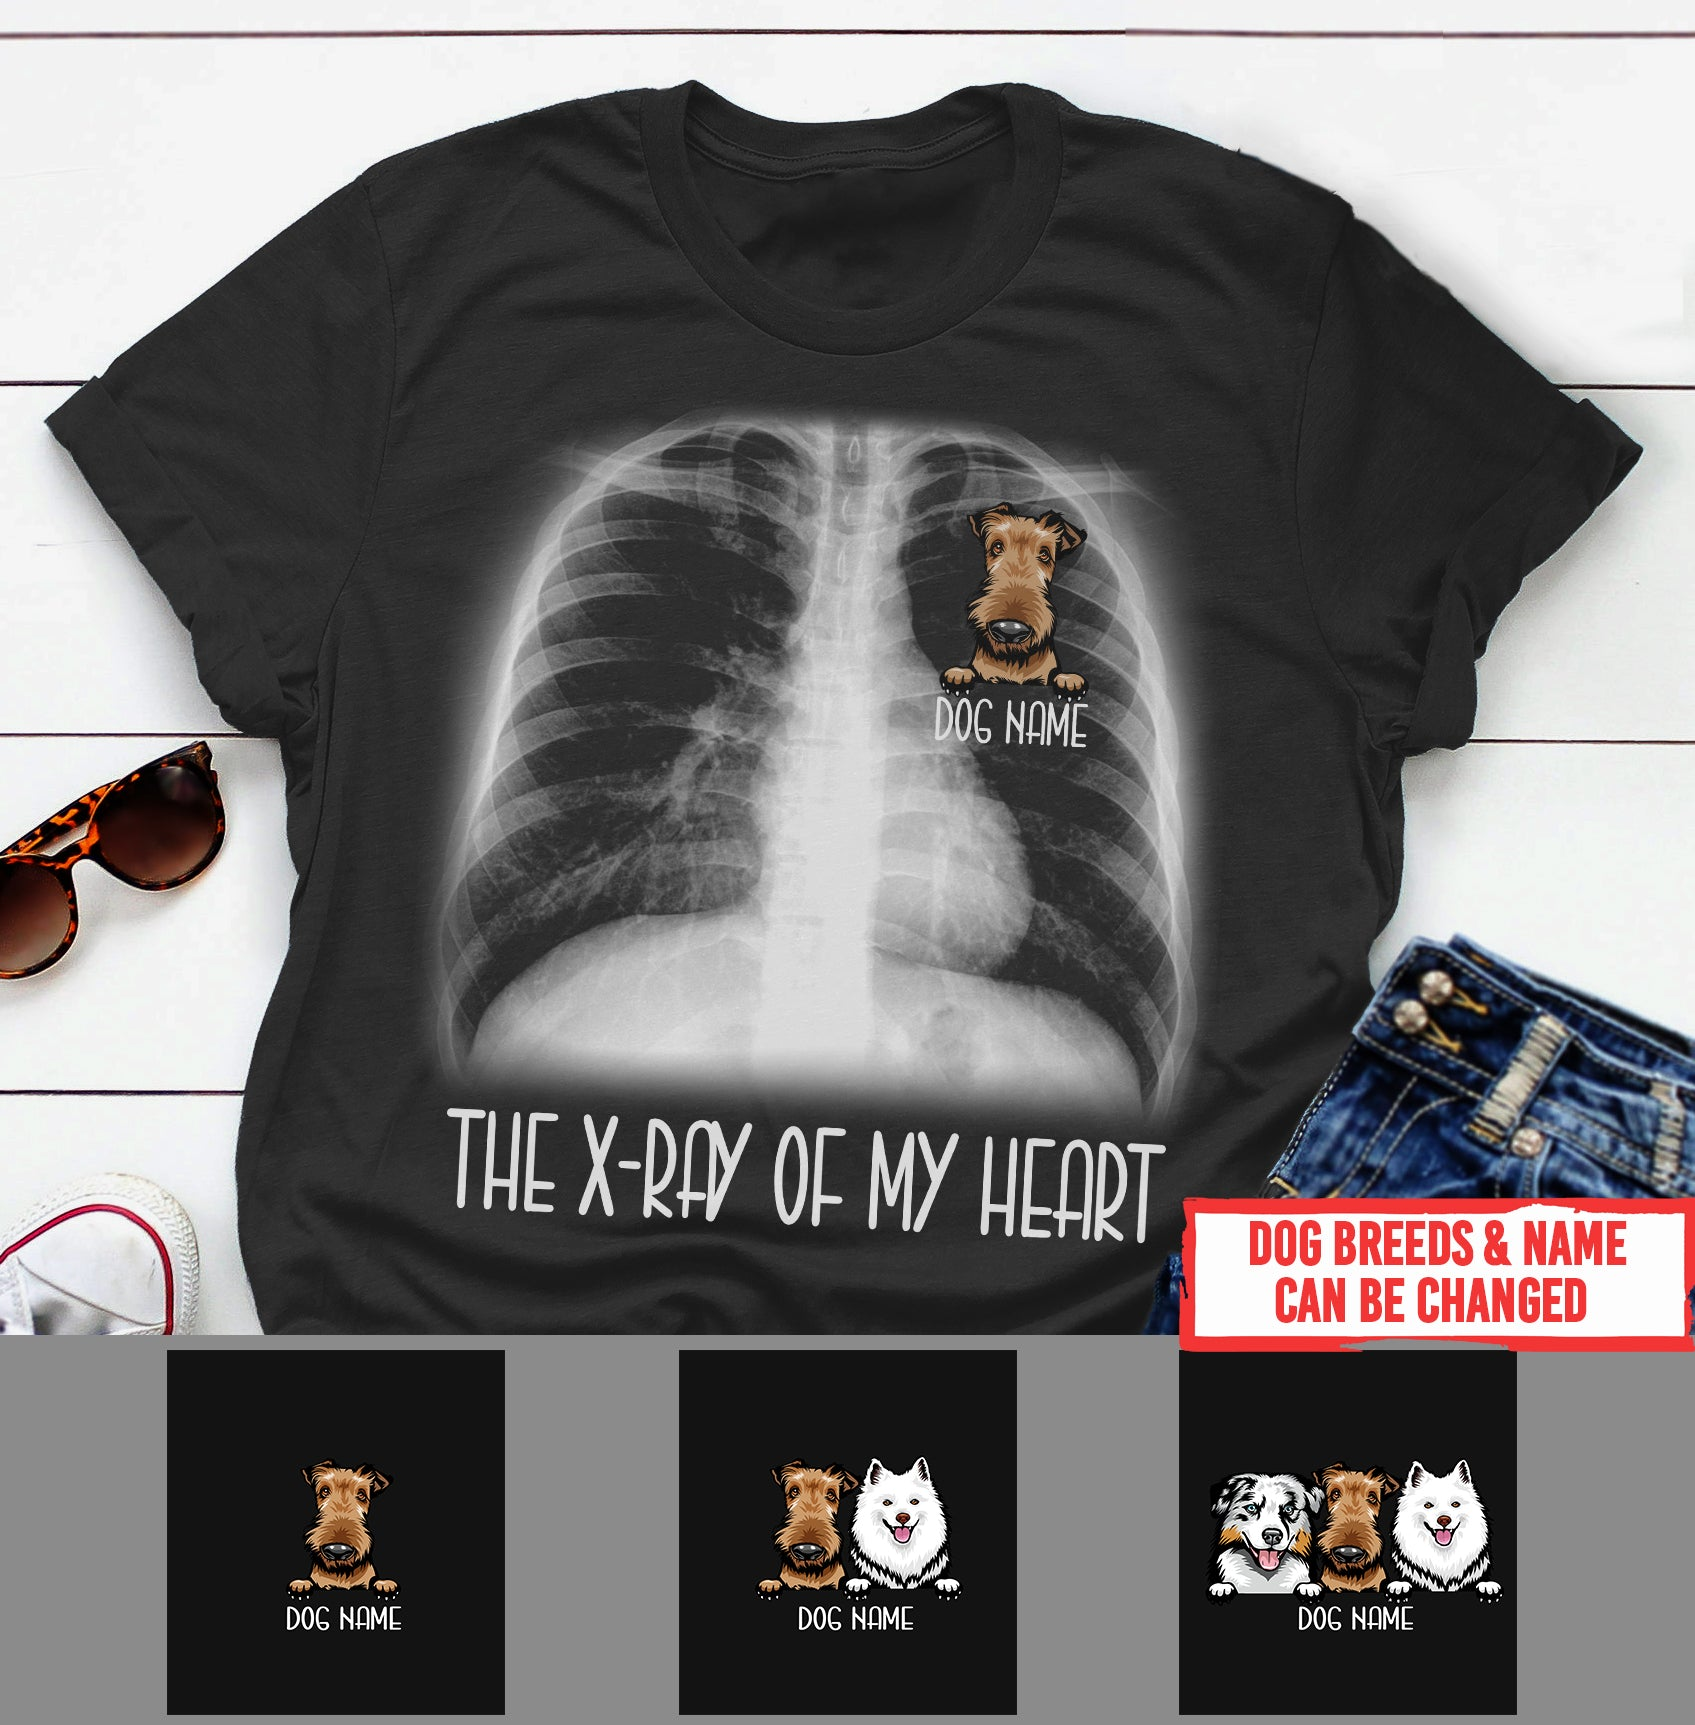 Personalized Dog Shirt - The X-ray of my heart